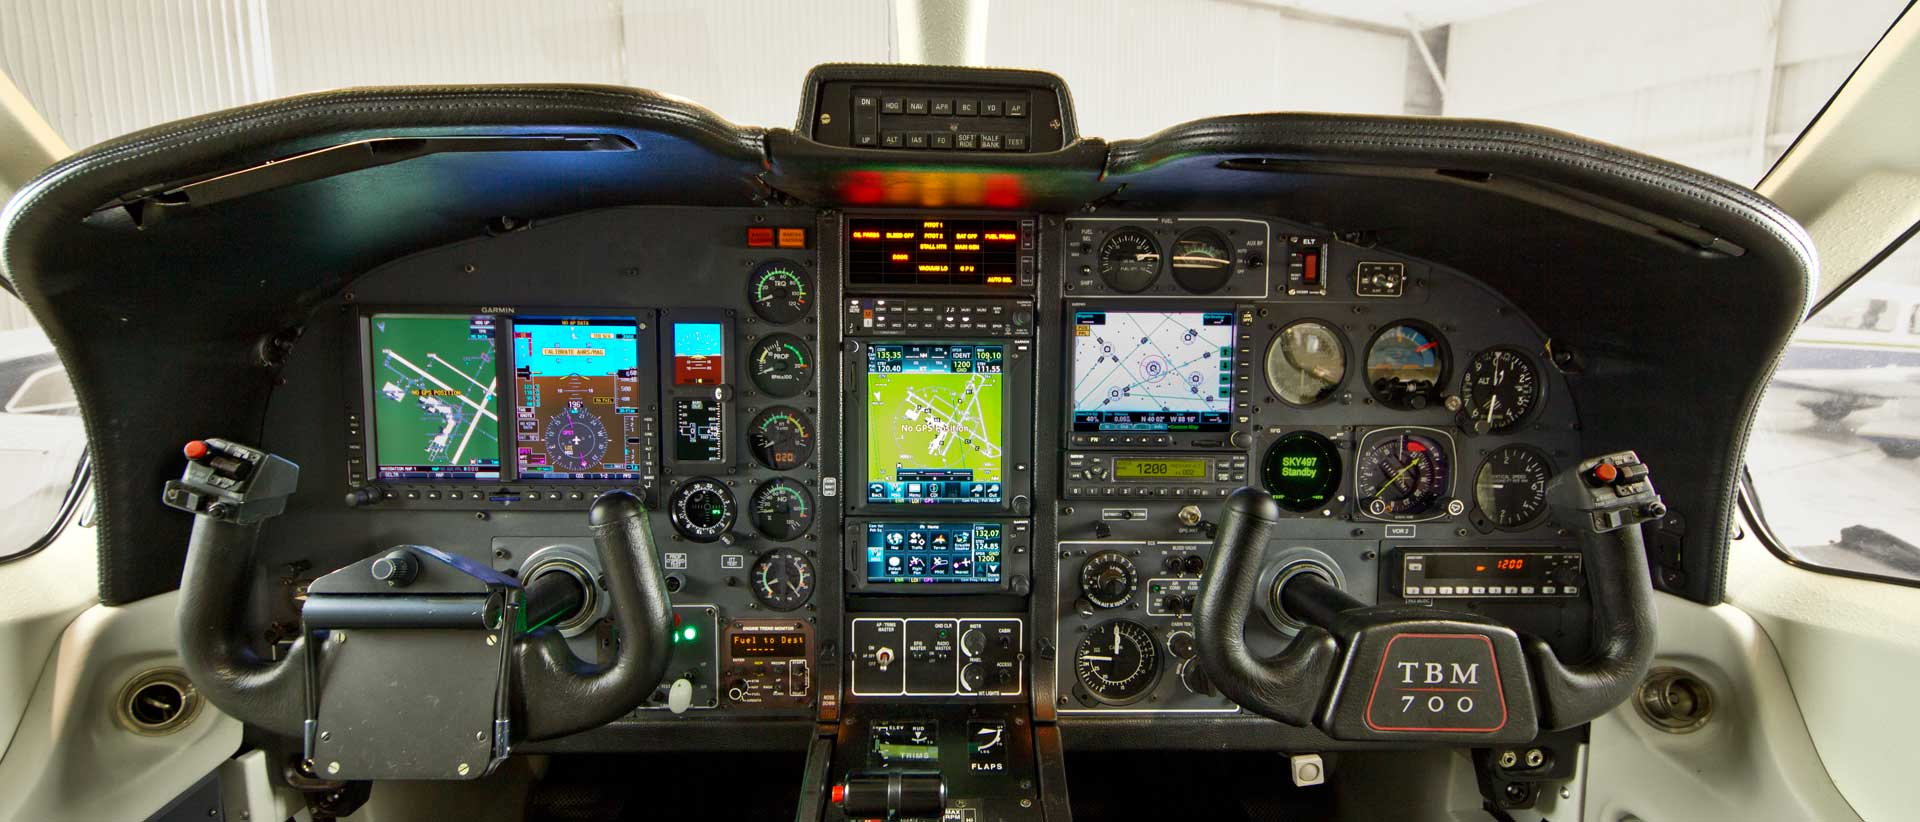 TBM-700 Avionics Upgrade